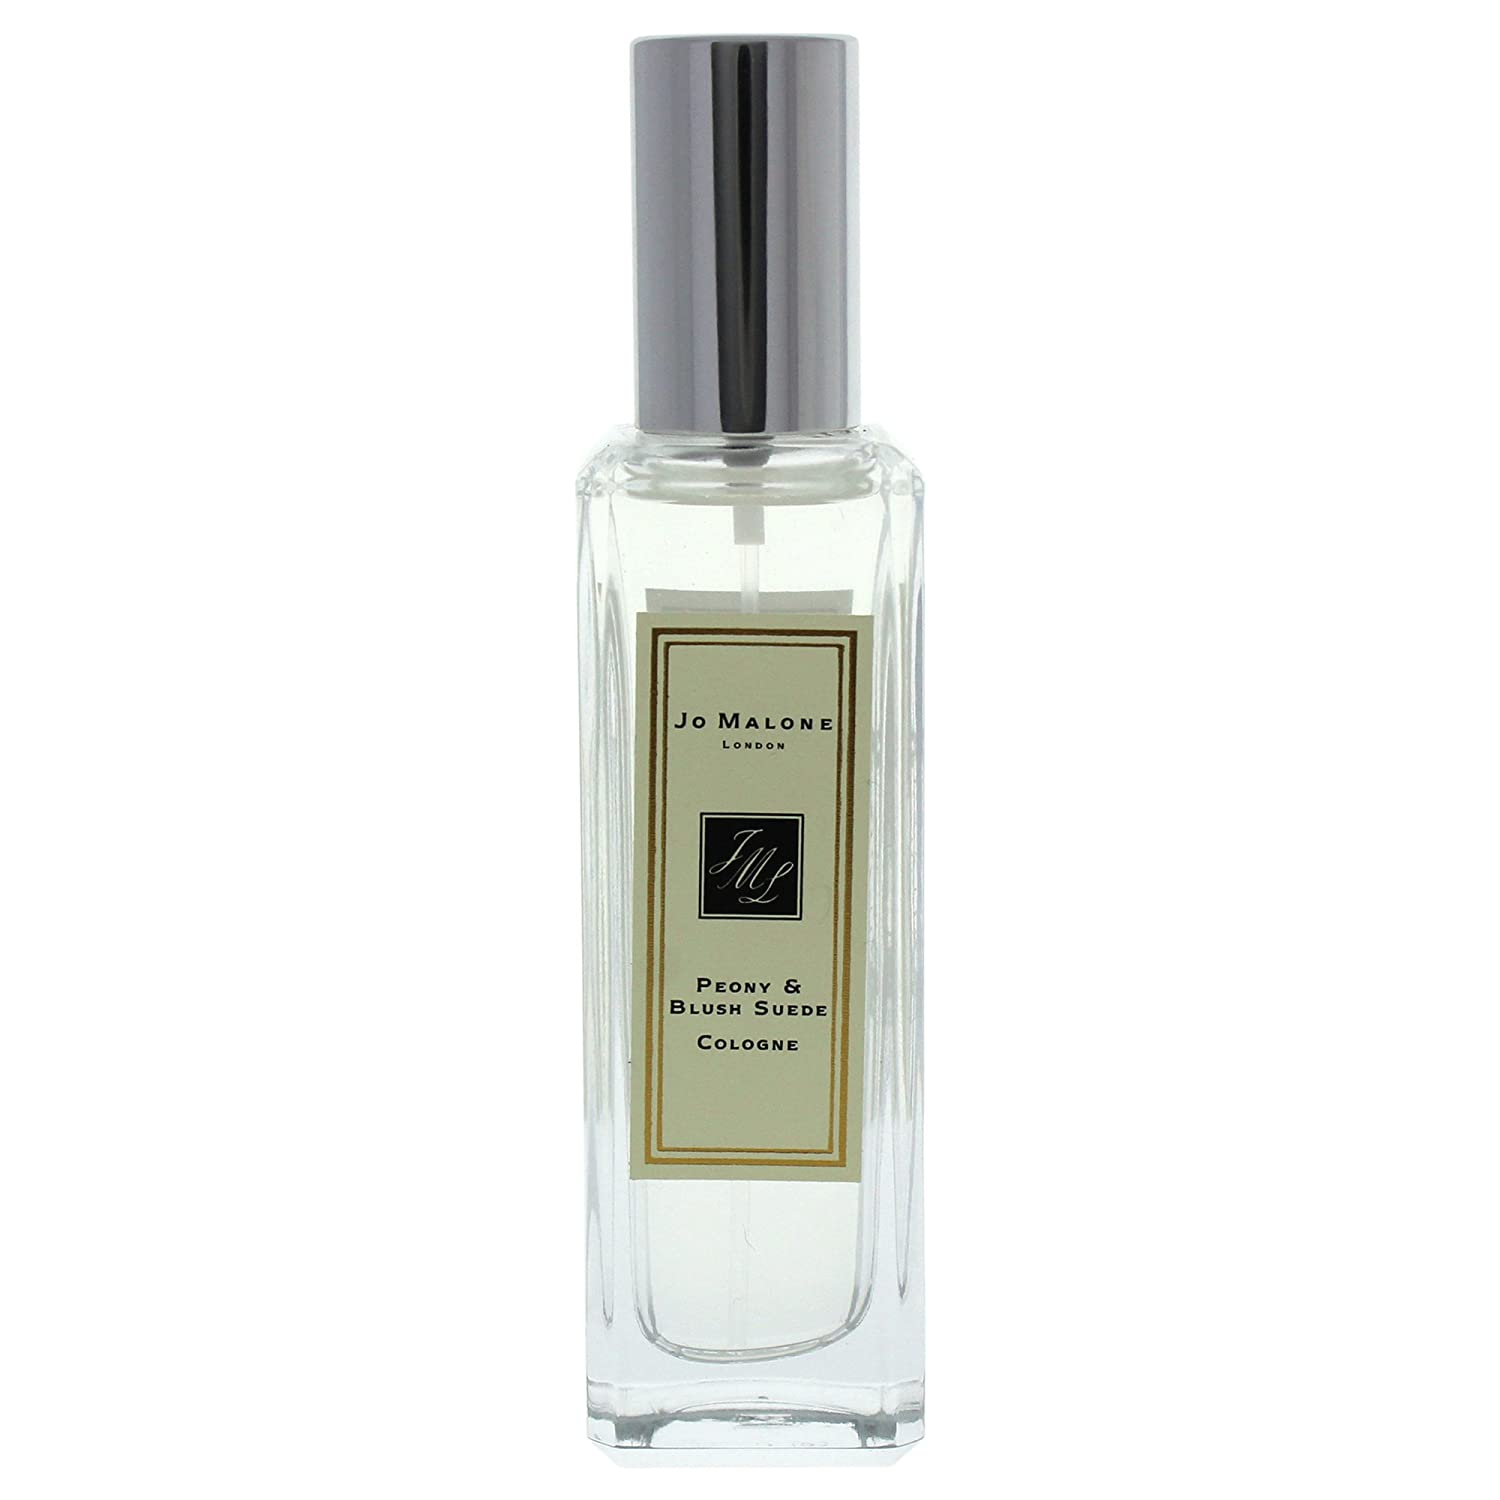 Jo Malone Peony & Blush Suede Cologne Spray for Women, 1 Ounce